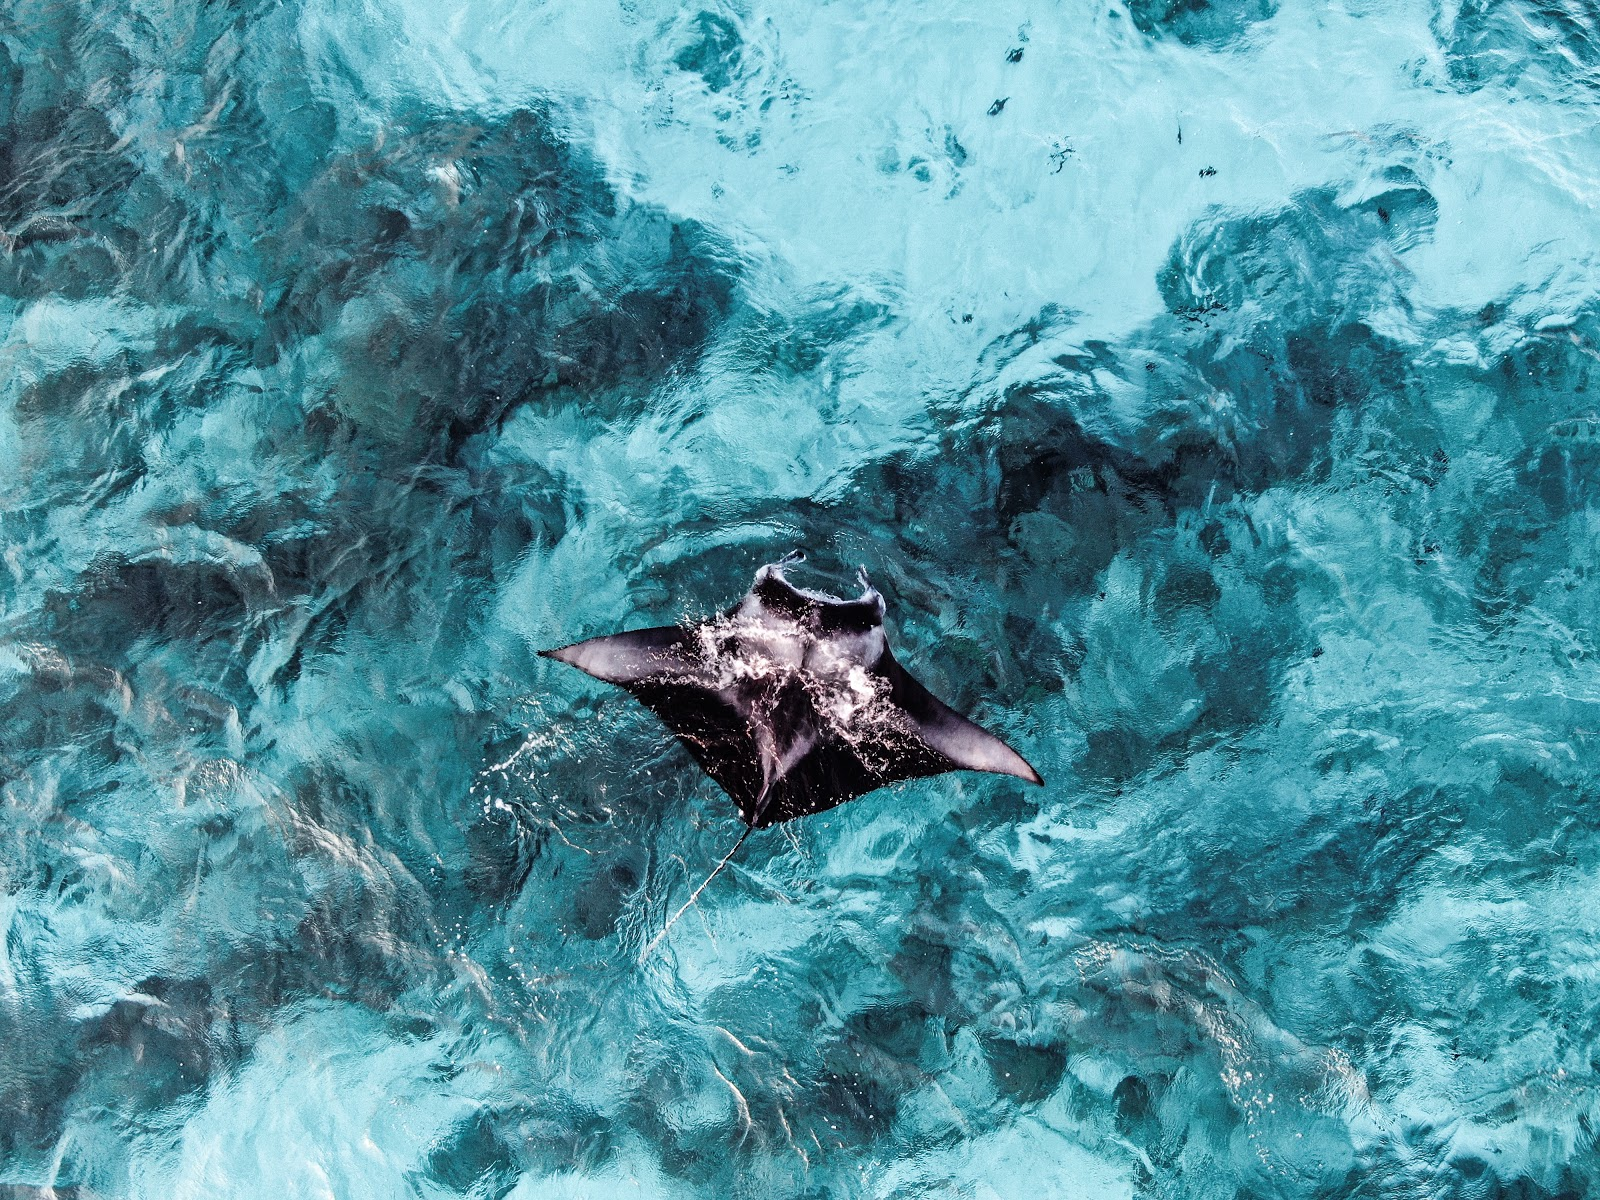 Giant Manta Rays in Mexico